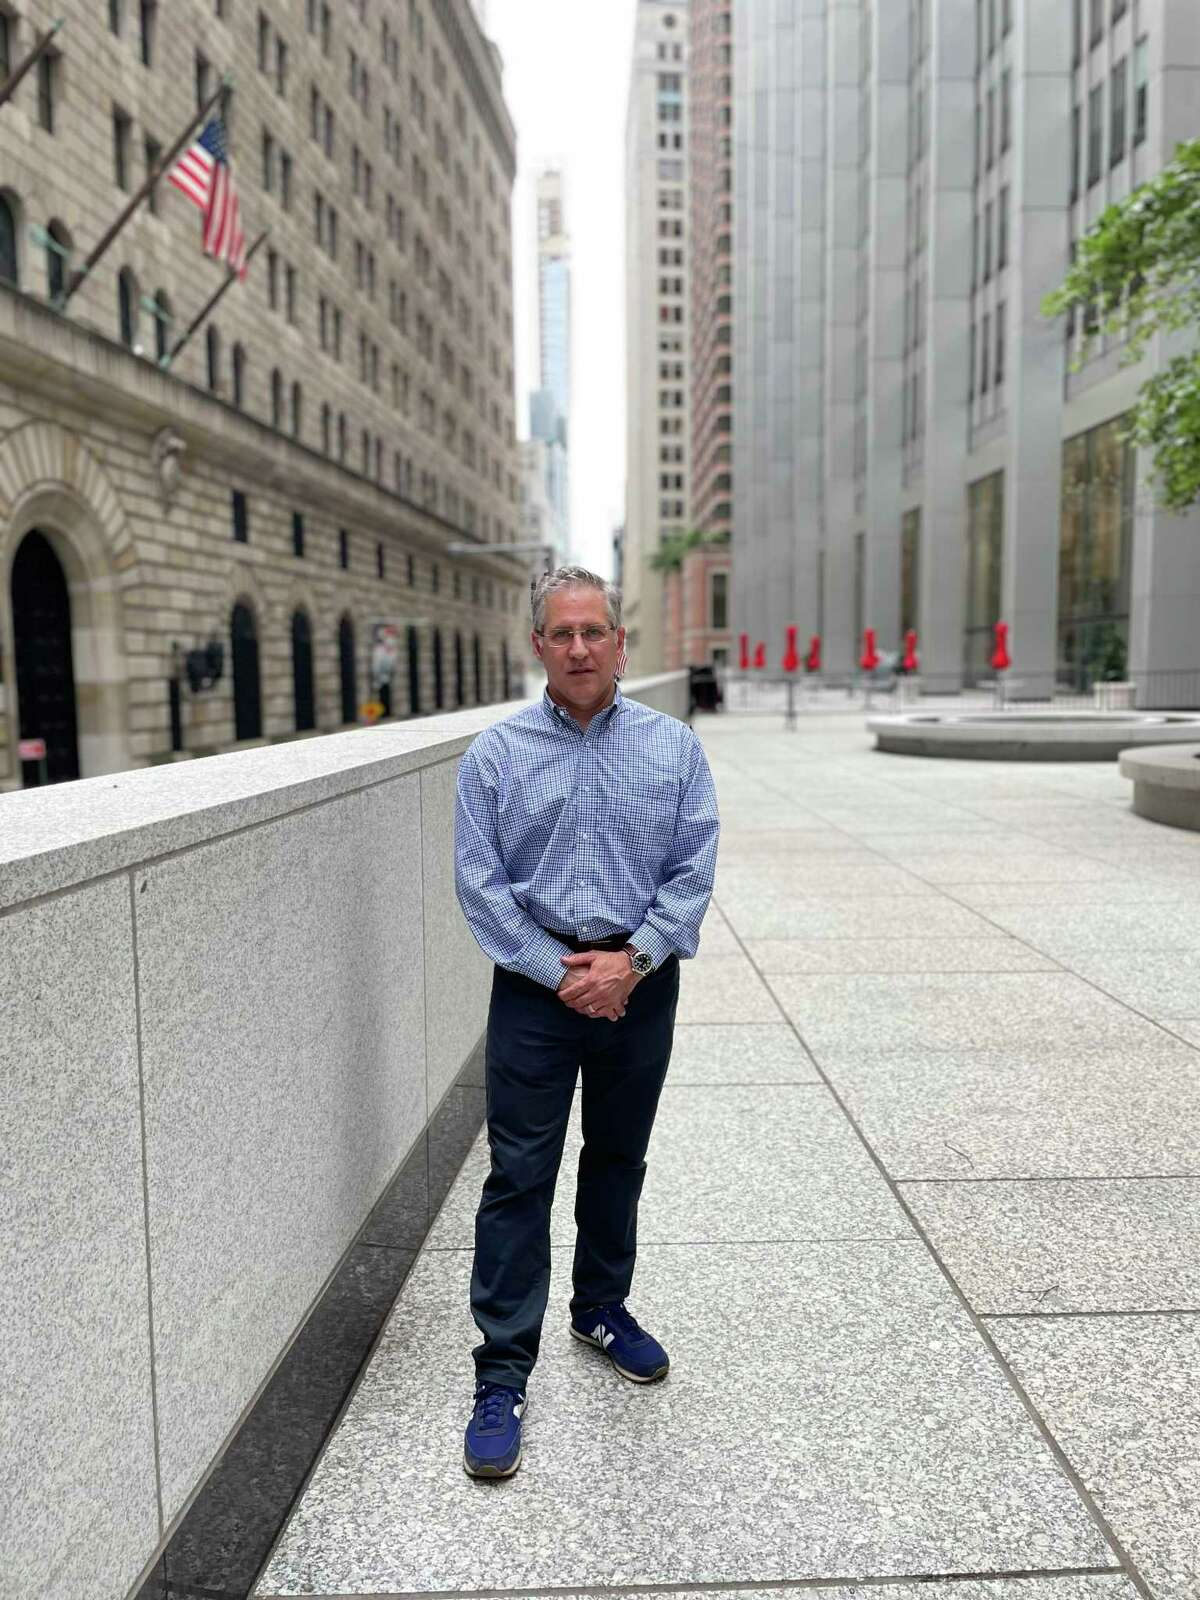 Darien resident Brian Moss stands in Chase Plaza in lower Manhattan on Sept. 5, 2021. From the same location on Sept. 11, 2001, he watched the twin towers of the World Trade Center burn after they were hit by hijacked planes and saw the WTC's South Tower collapse.